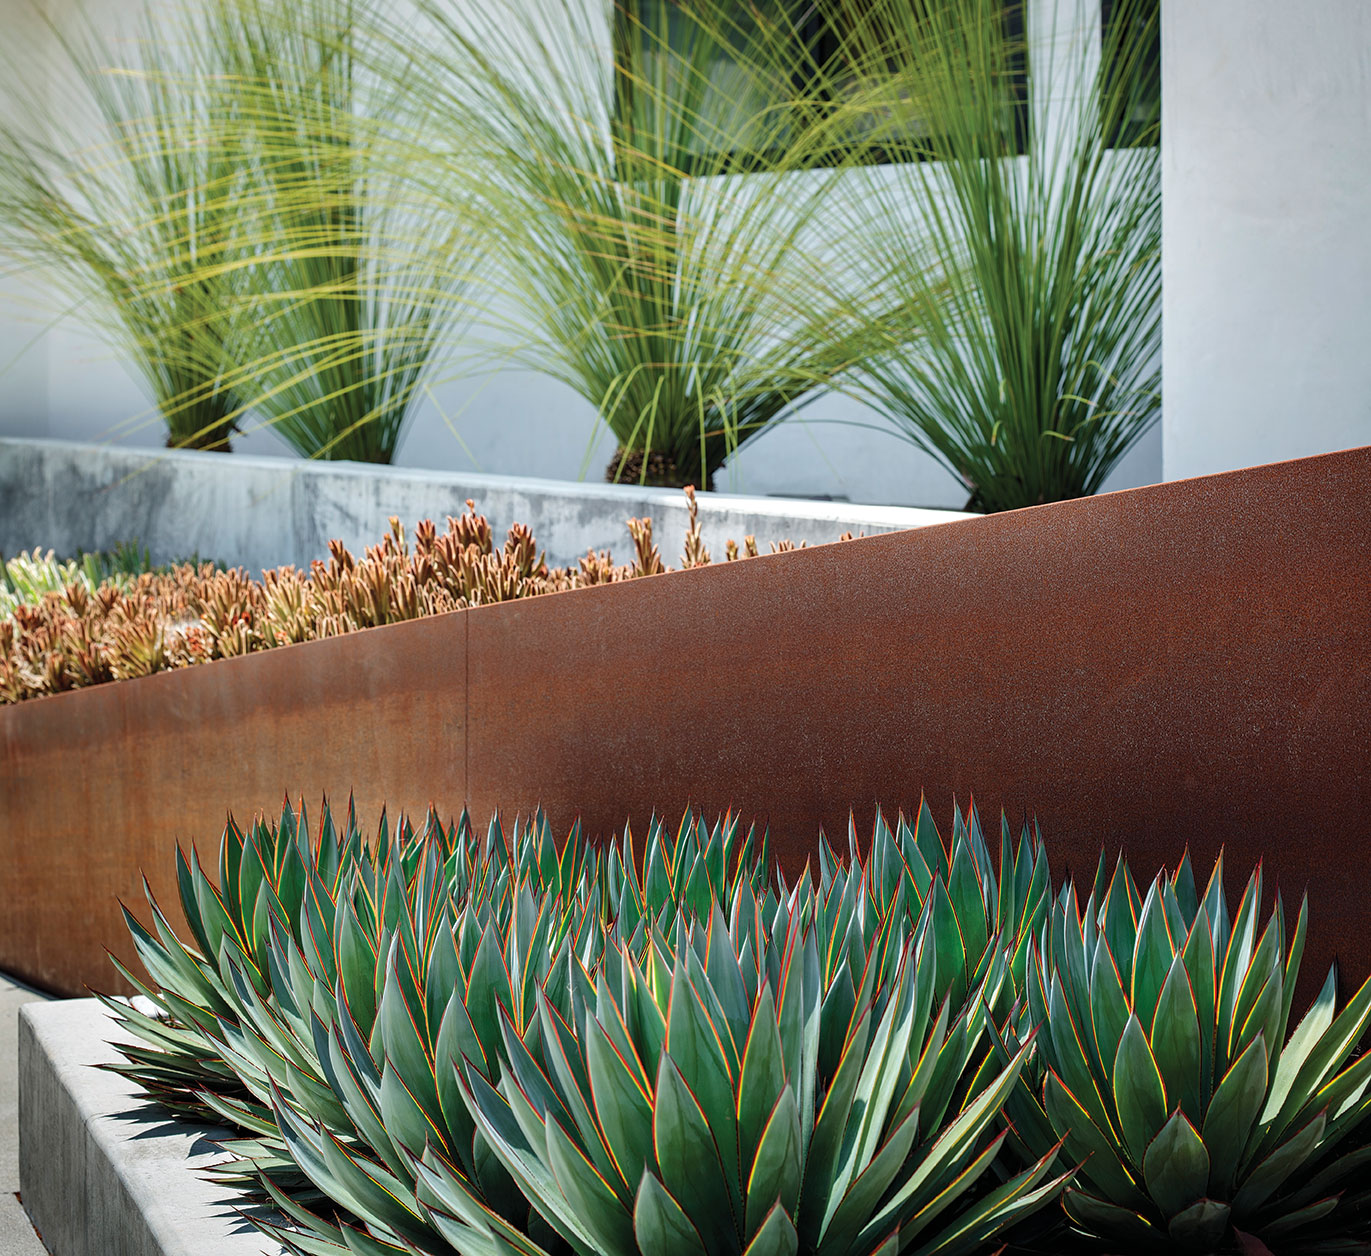 Aloe, agave and grasses in steel and concrete planters